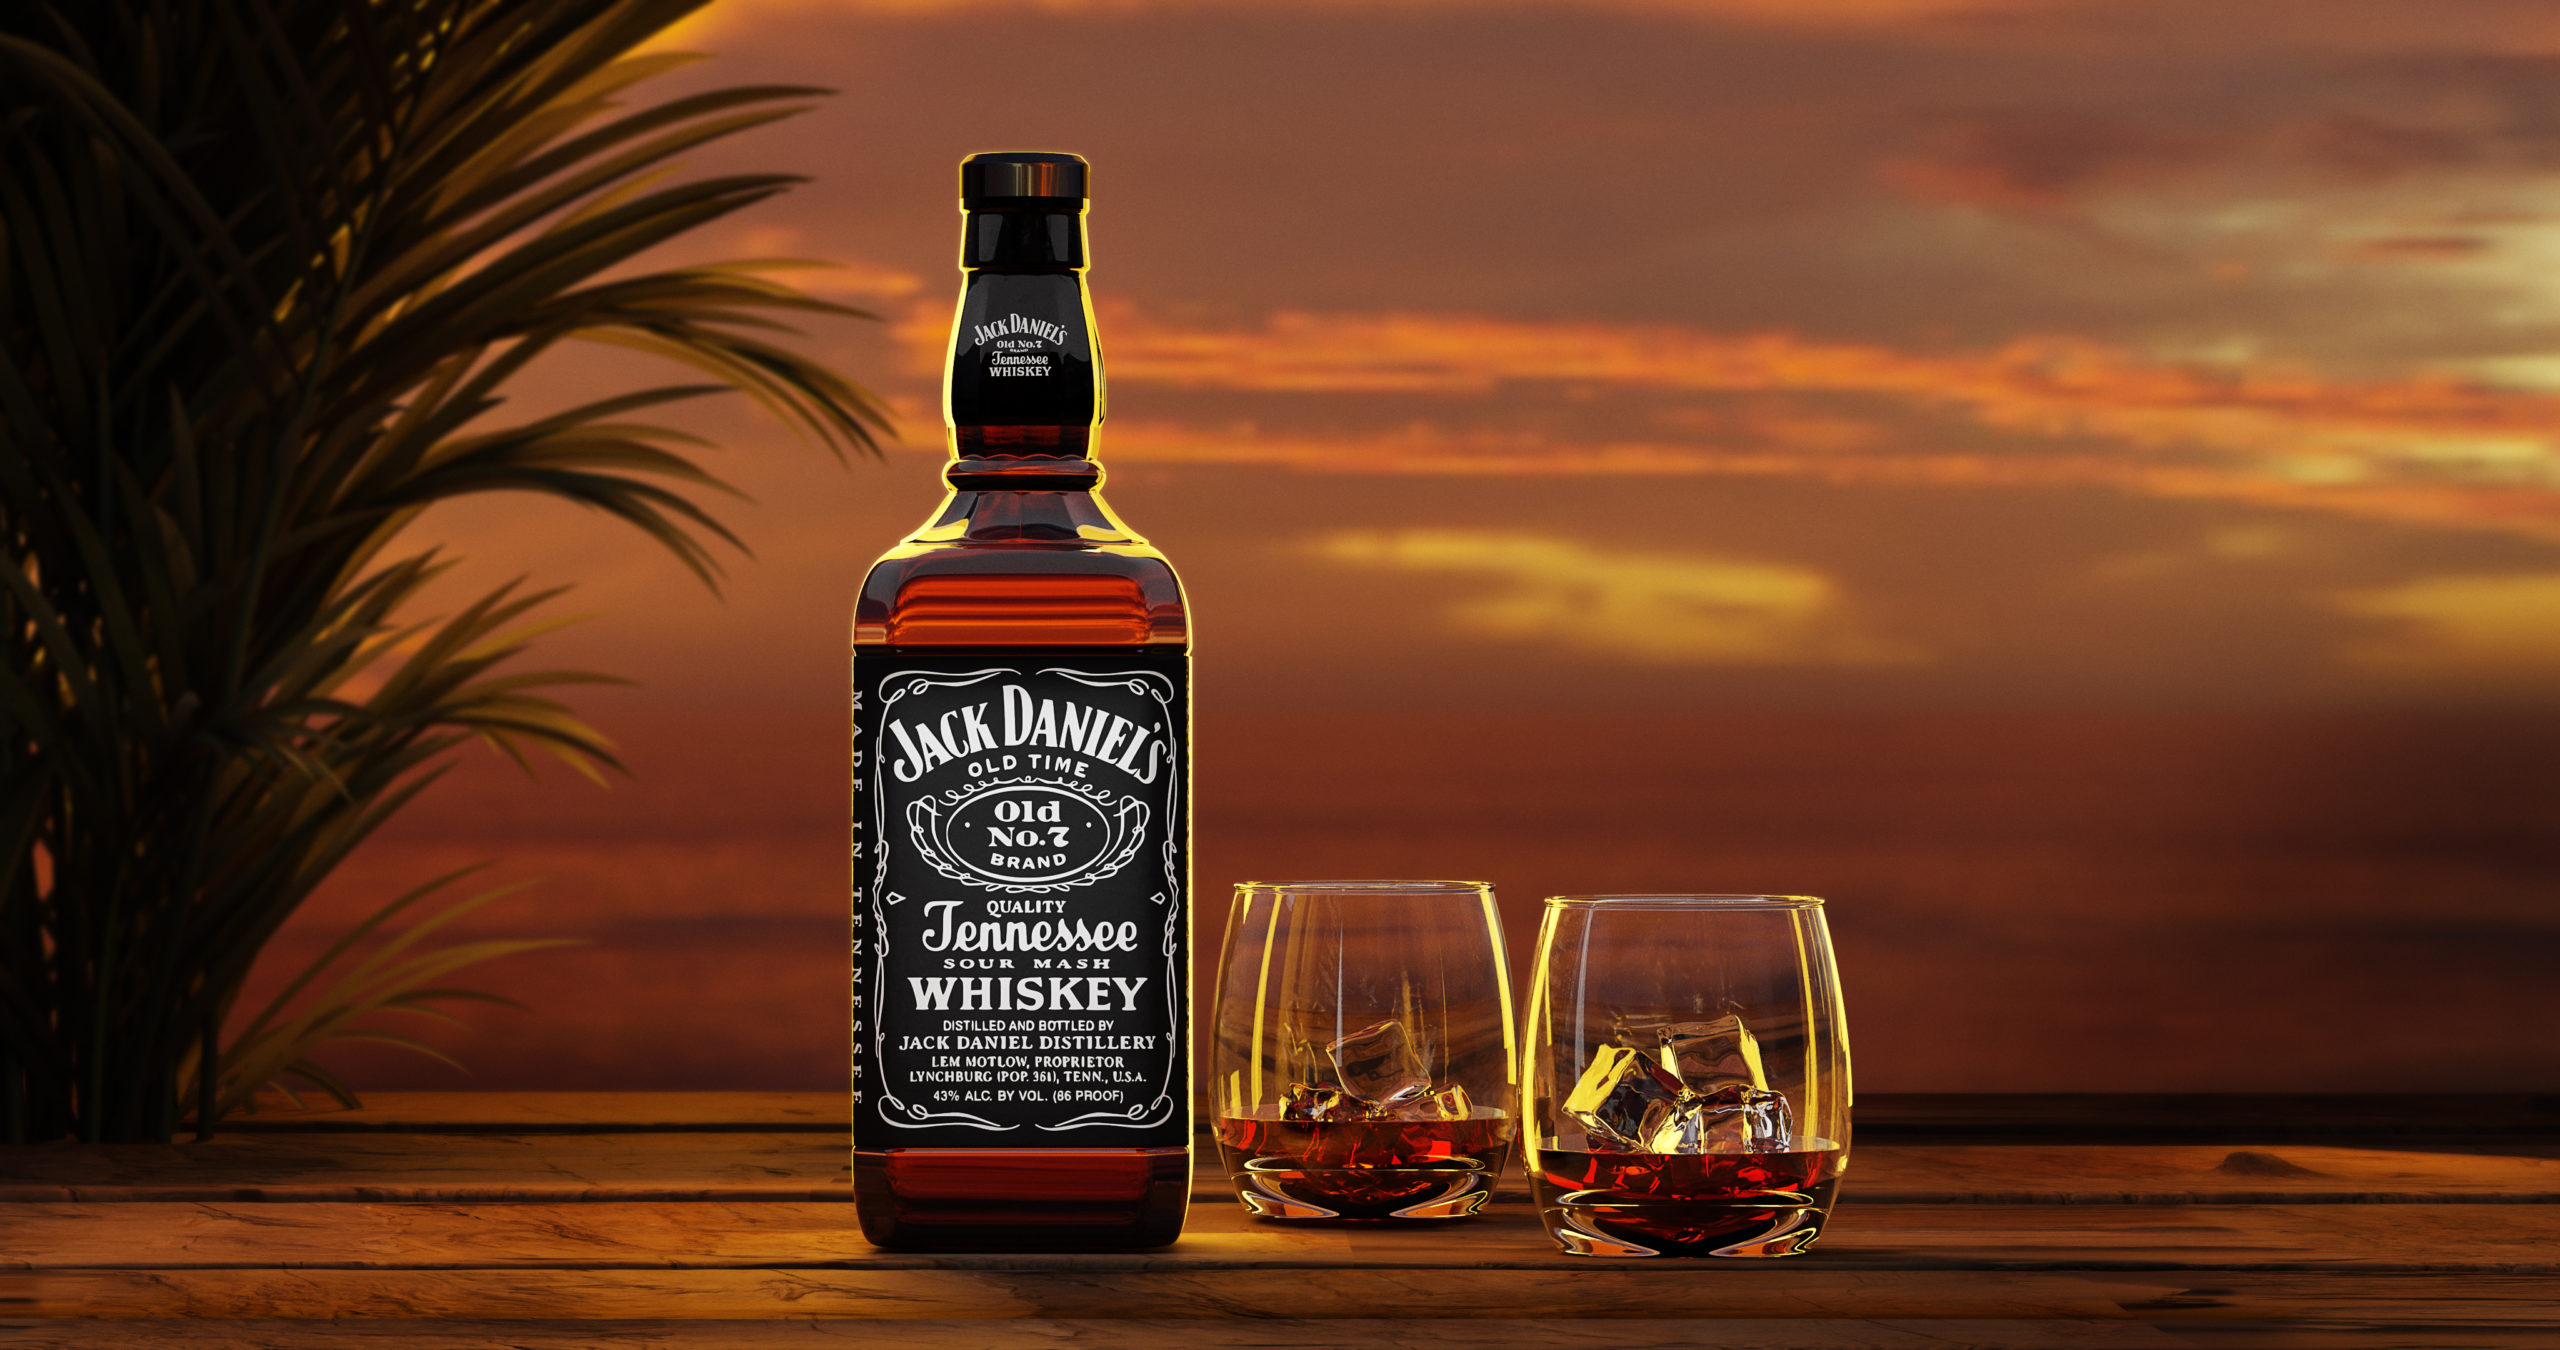 Jack Deniel bottle and two glasses of whisky on a wood table top with sunset in the background